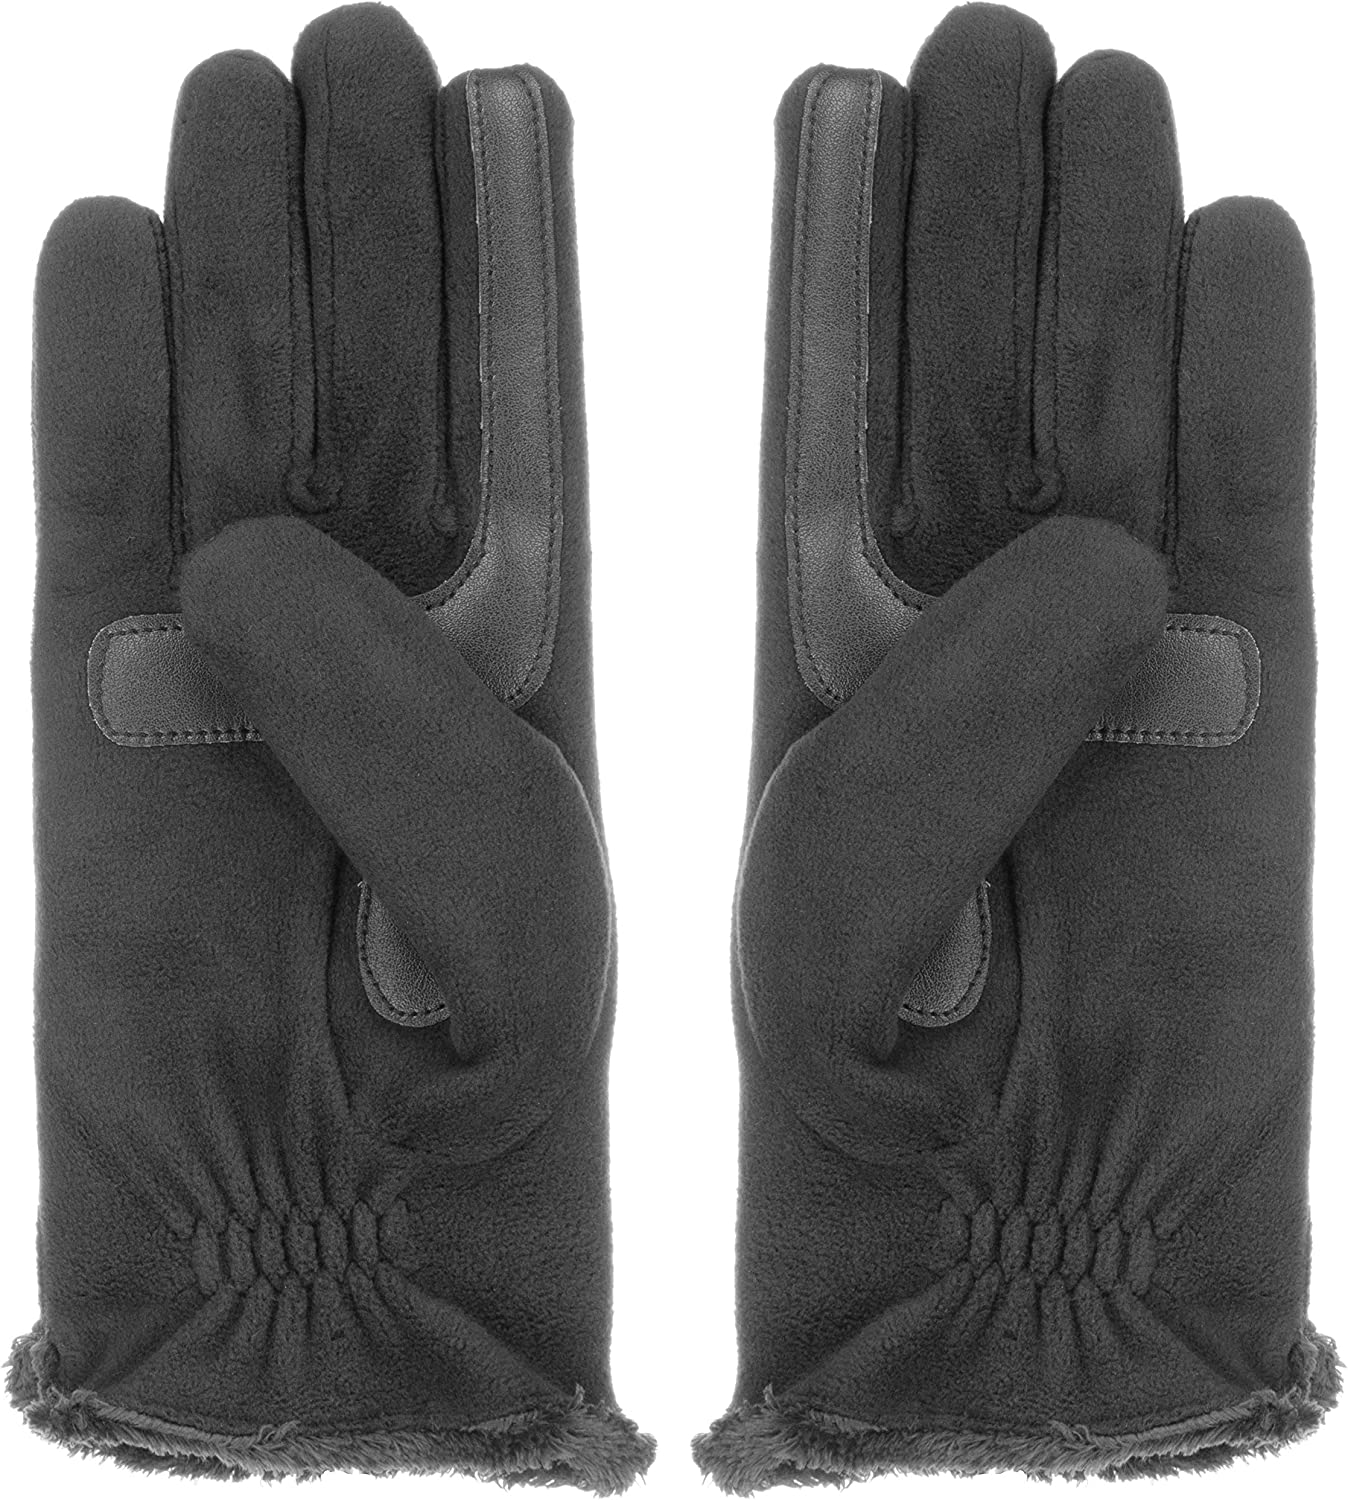 Isotoner womens Stretch Fleece Glove Microluxe